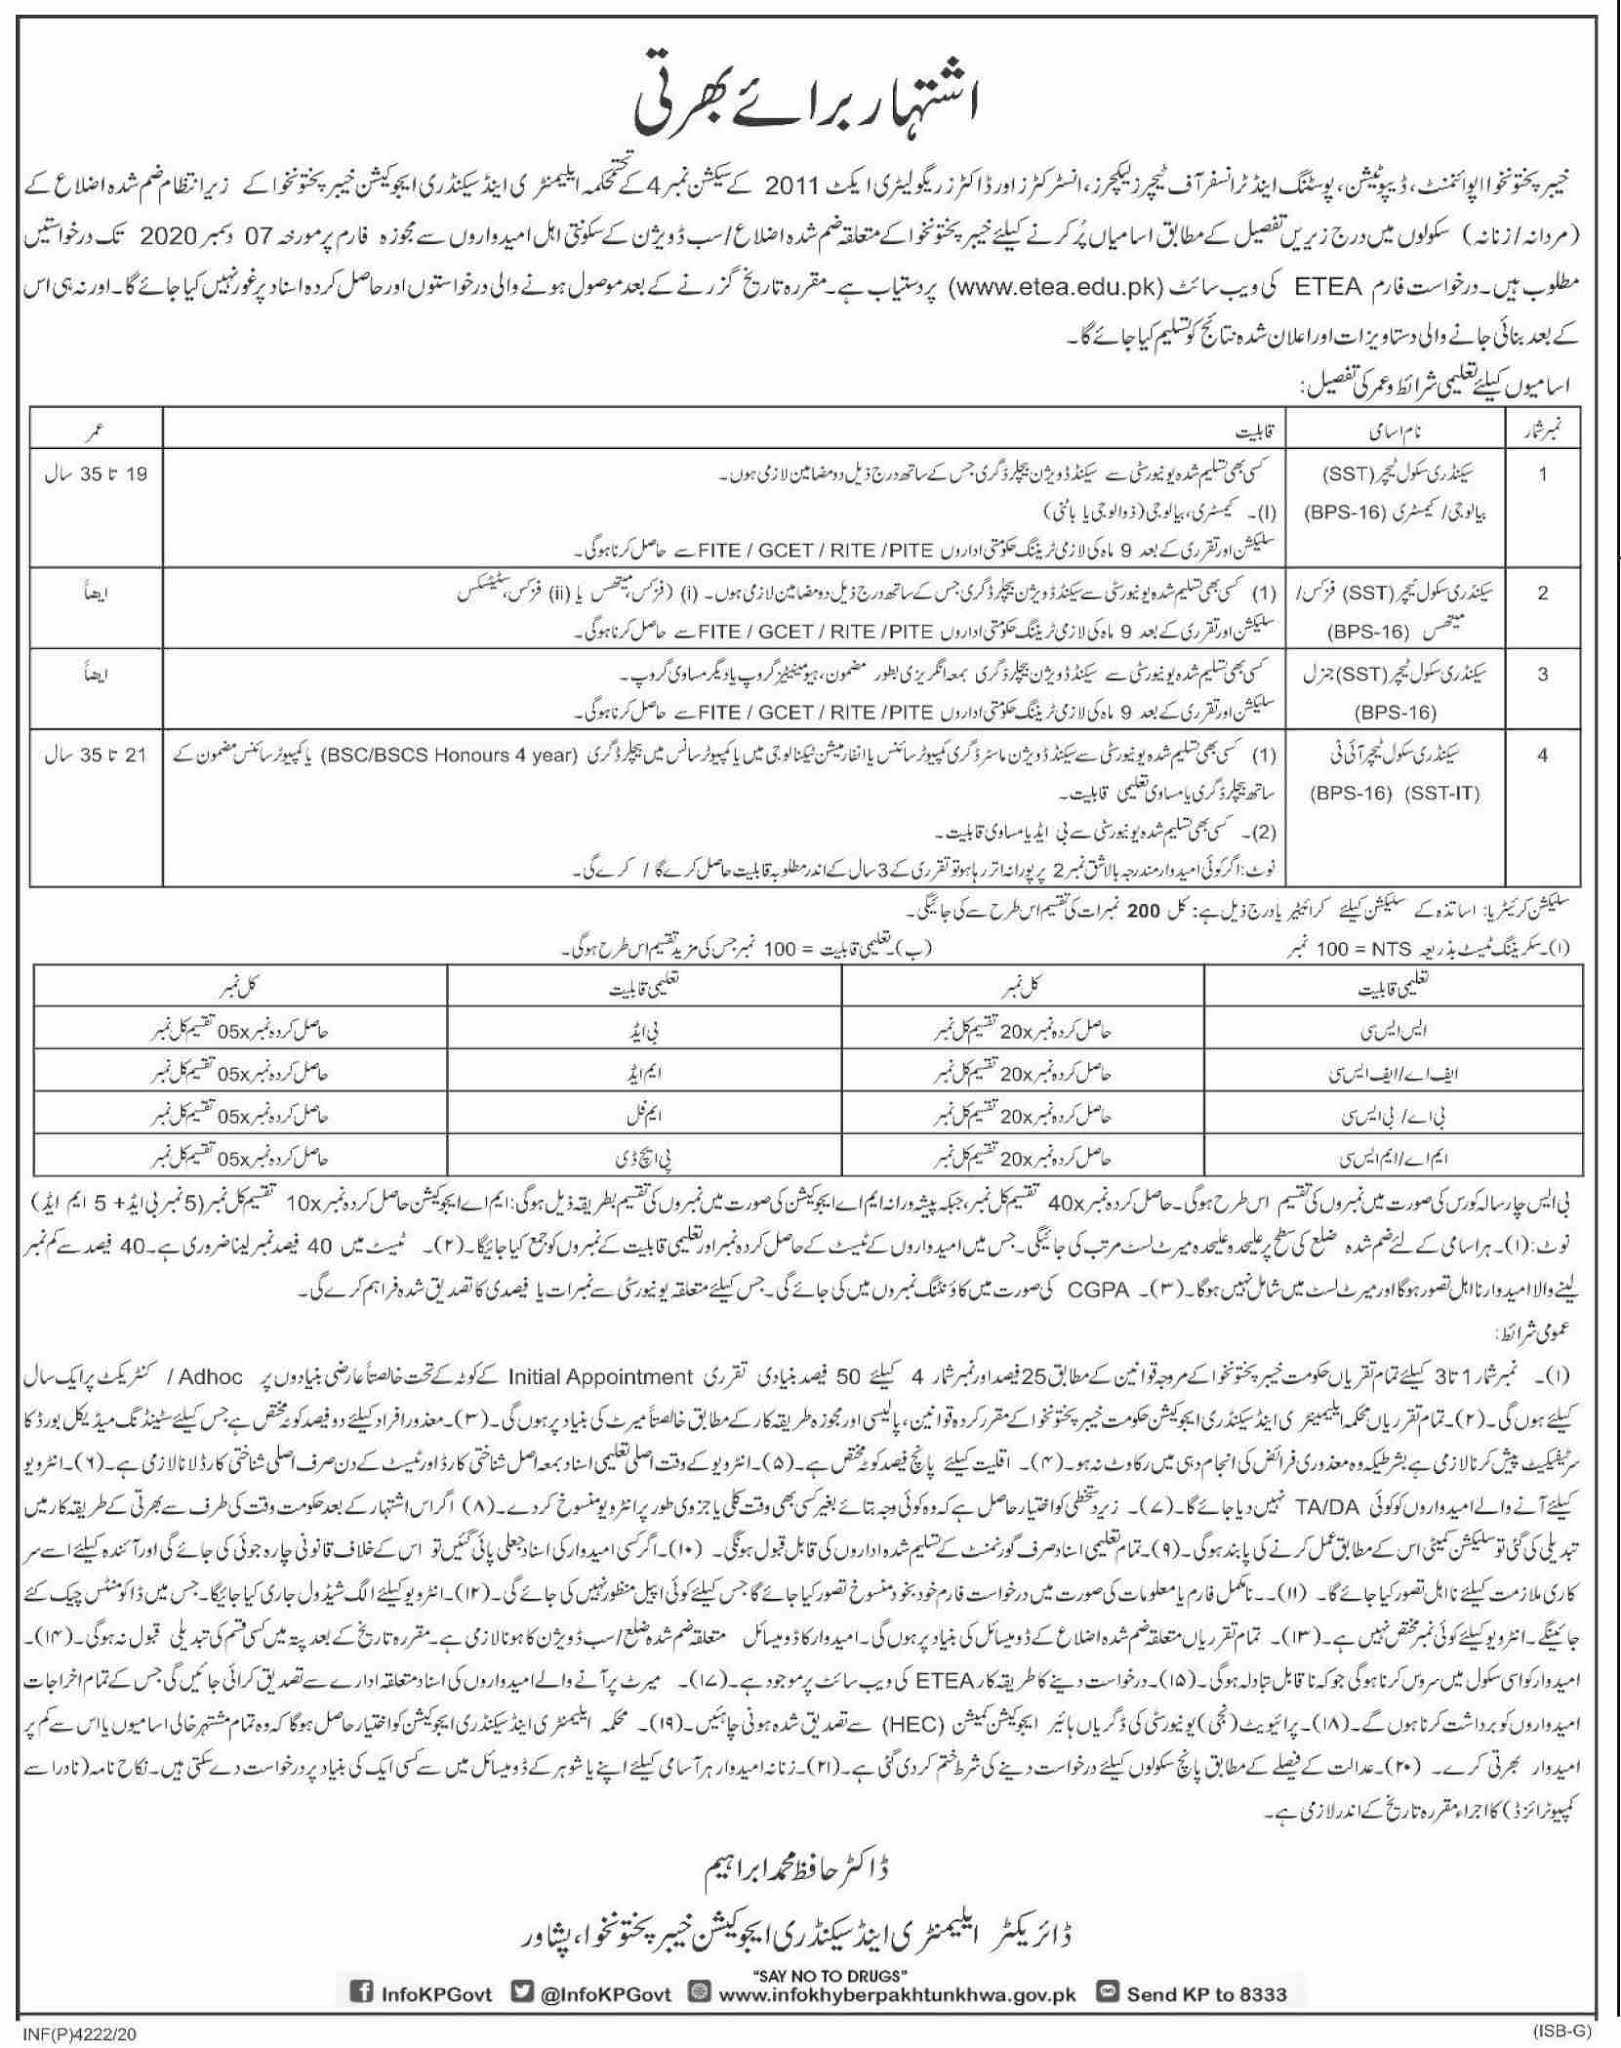 Elementary & Secondary Education Department Latest Govt Teaching Jobs in Pakistan - Download Job Application Form - www.etea.edu.pk Jobs 2021